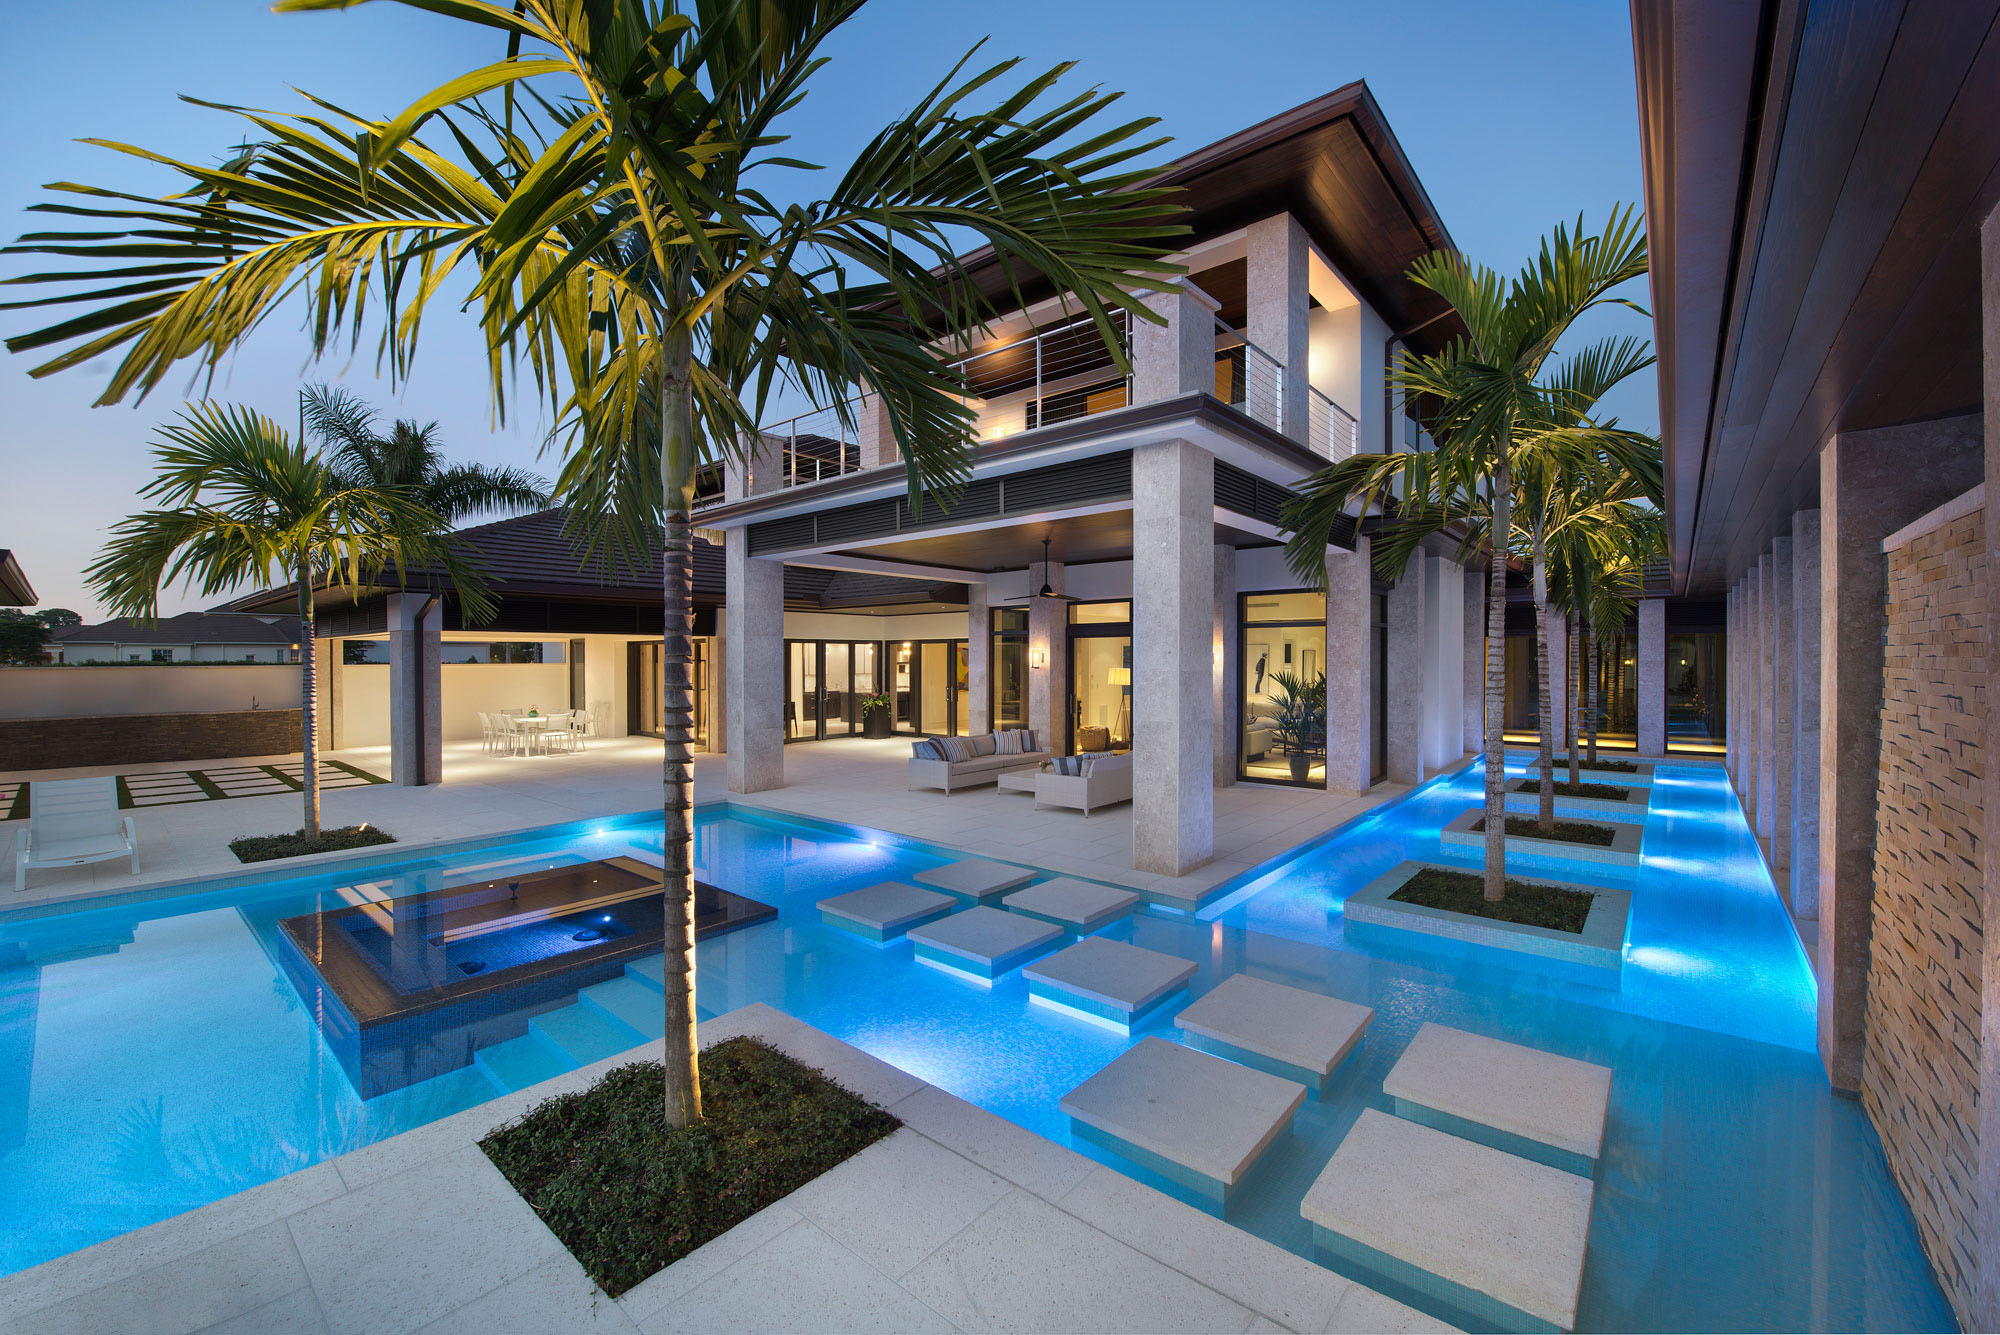 Custom dream home in florida with elegant swimming pool for Custom dream house